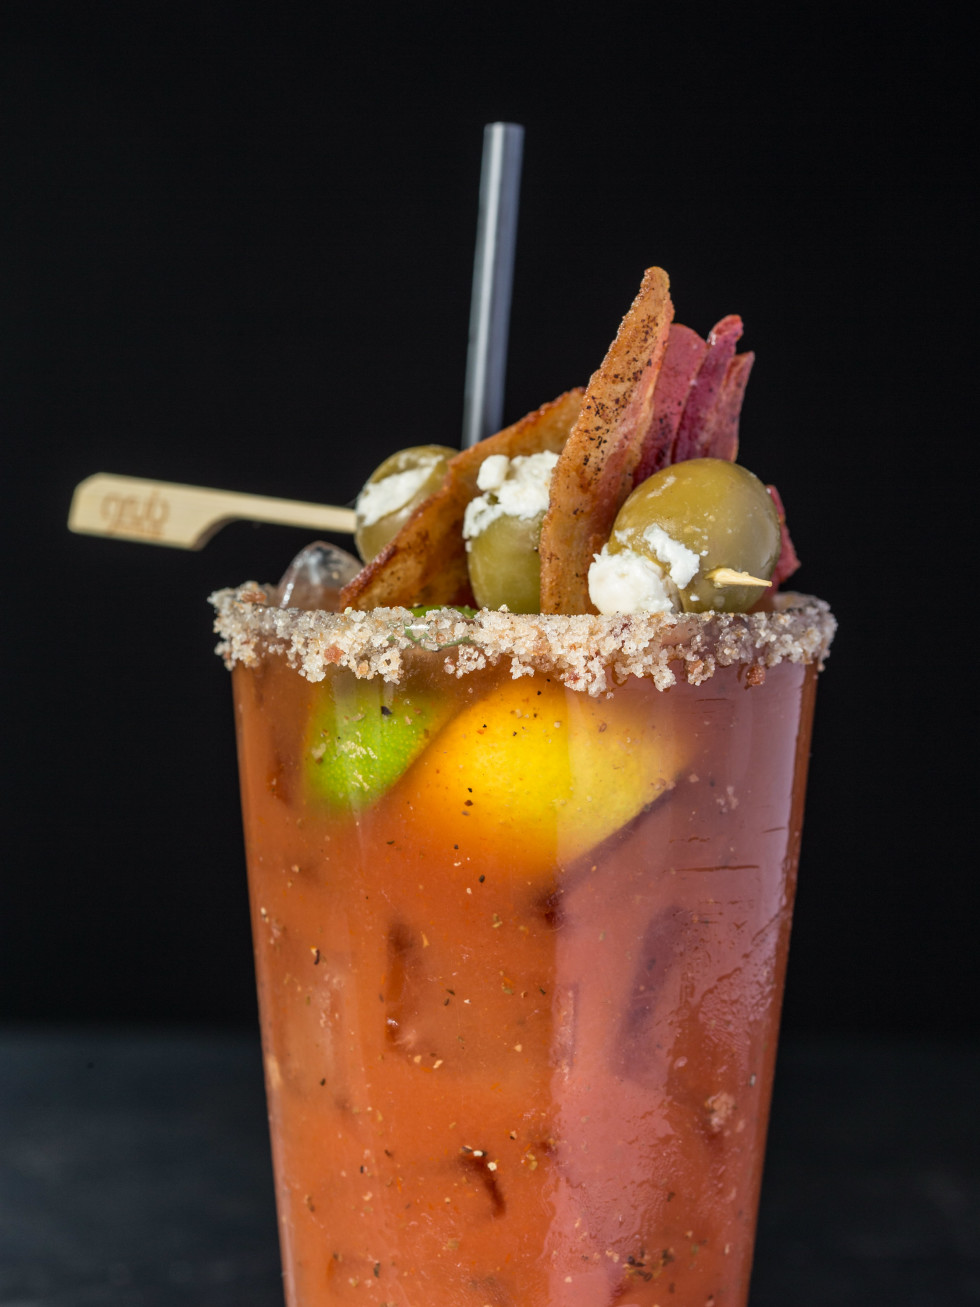 Bacon-infused Bloody Mary